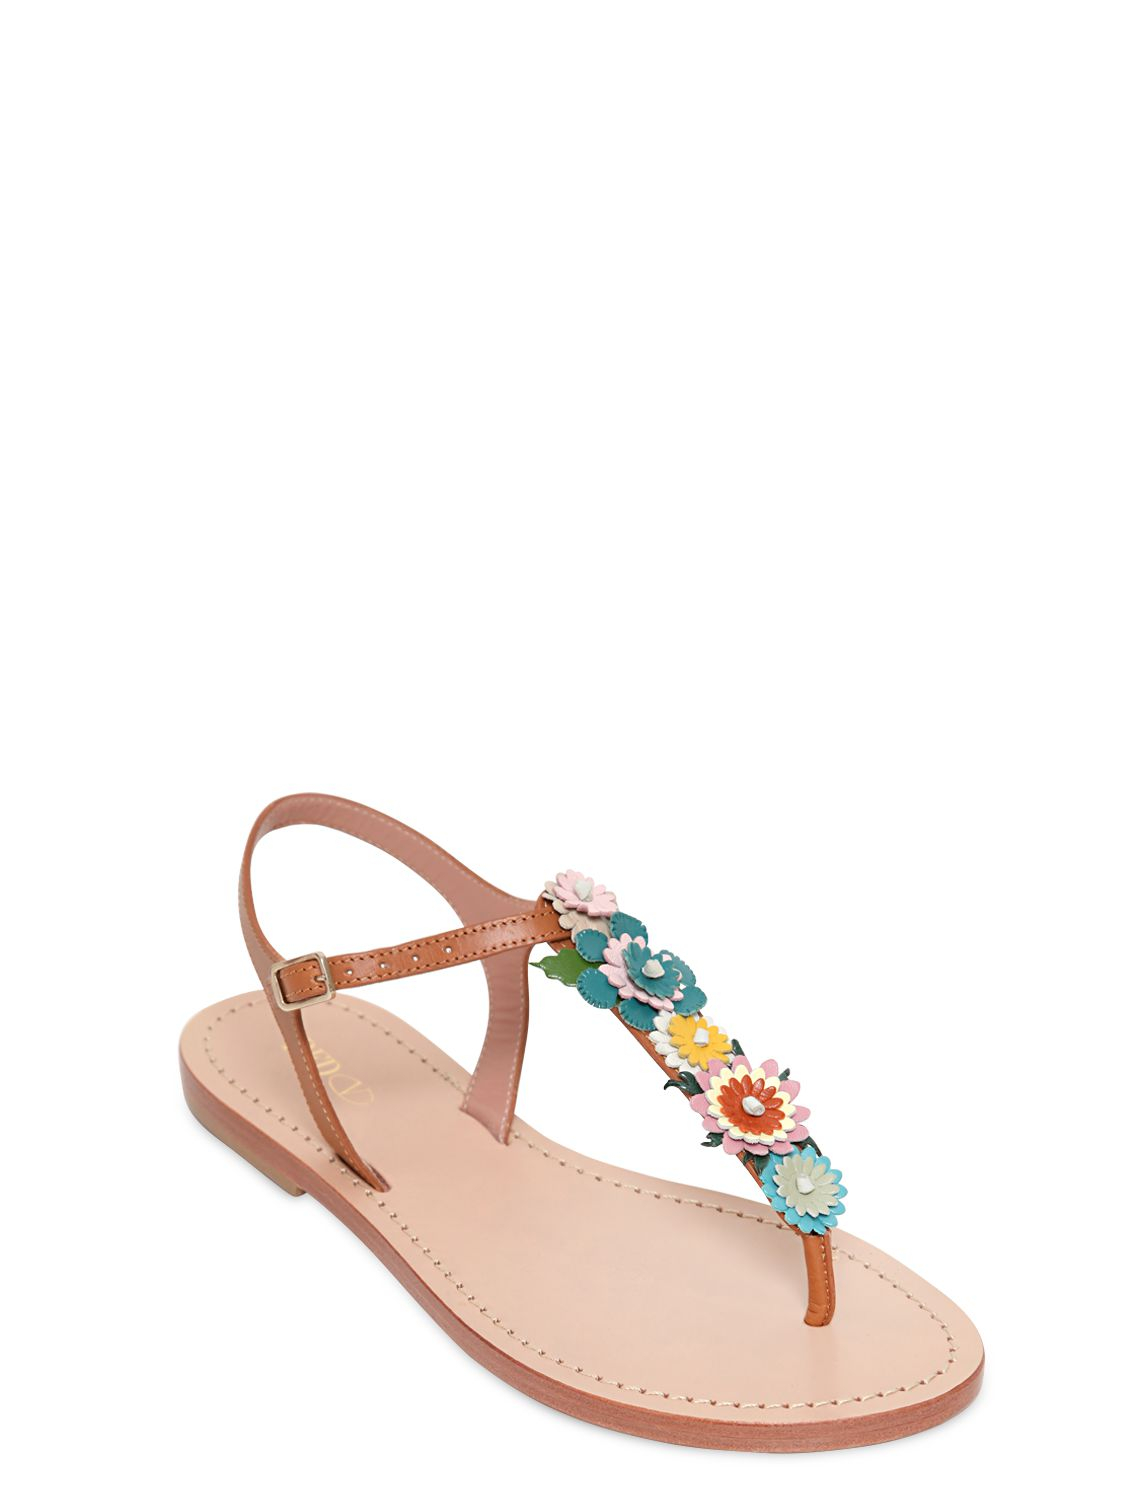 Natural Leather Color Sandals